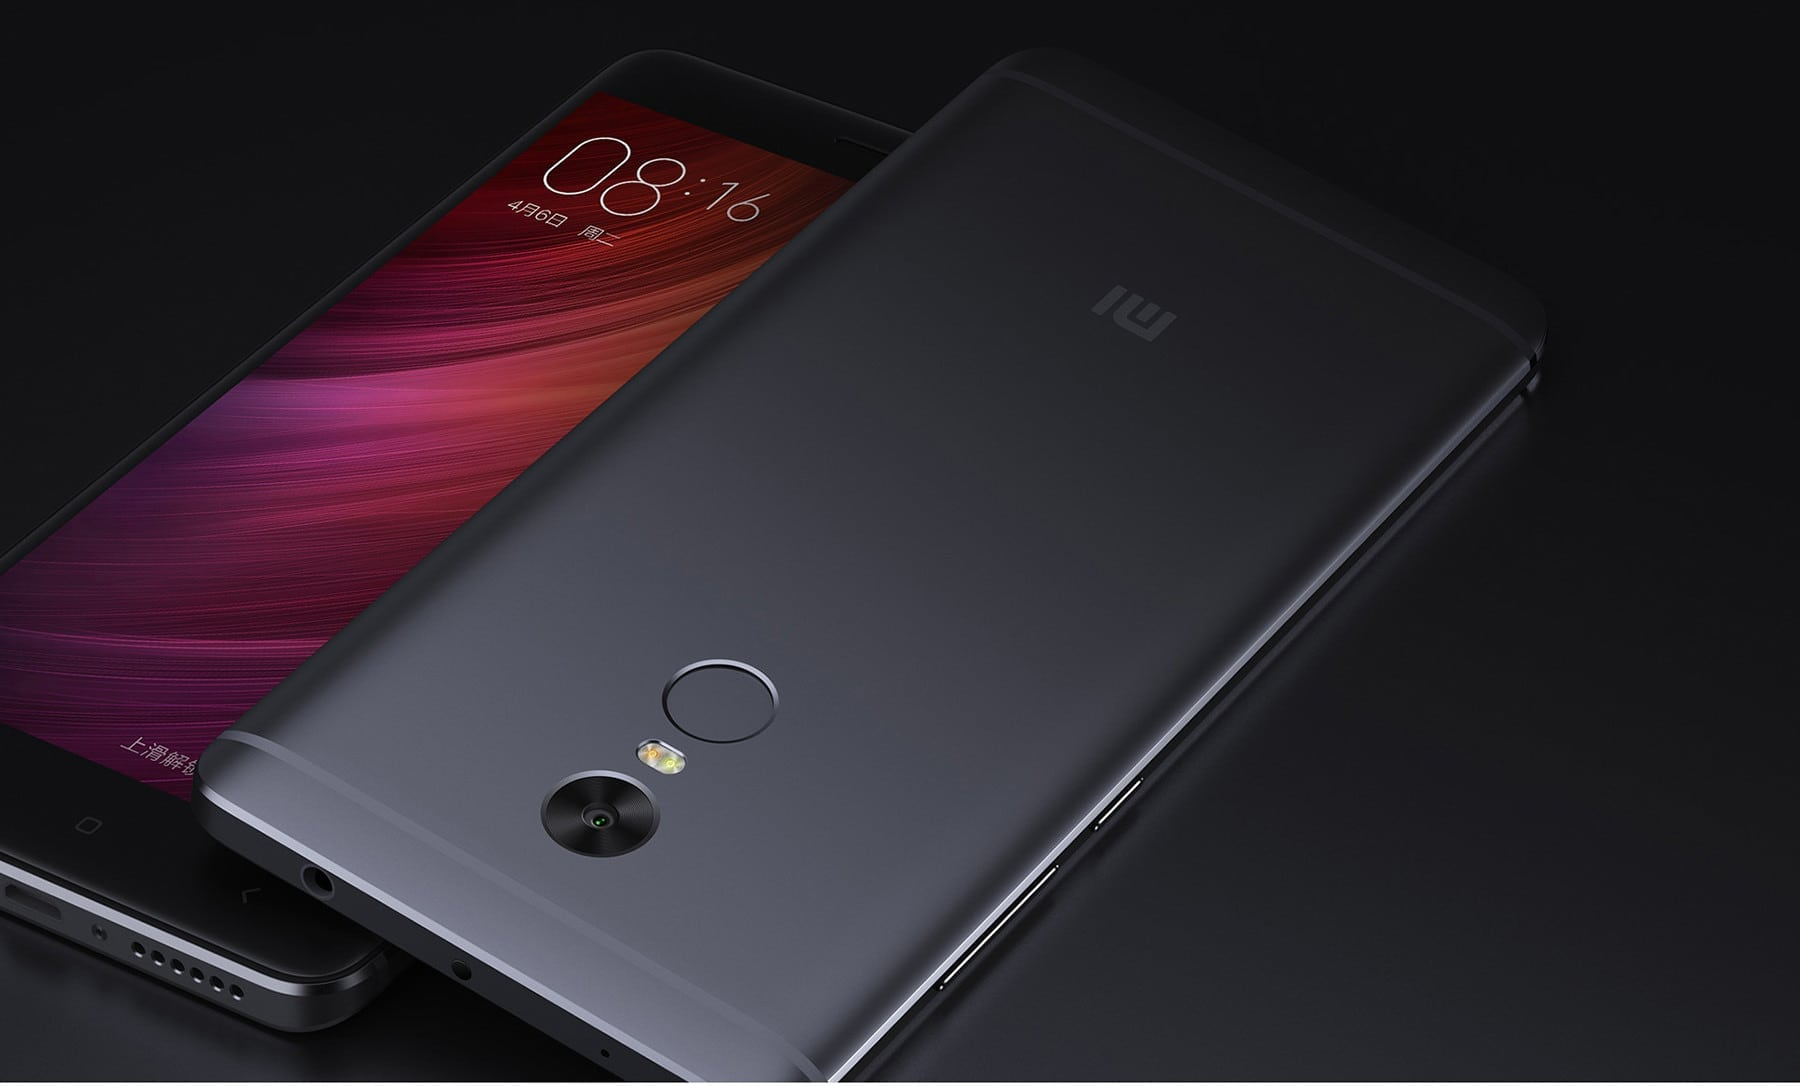 Xiaomi Redmi Note 4 Review The Best Redmi Note Yet: Is Xiaomi Redmi Note 4 The Best Android Phone On The